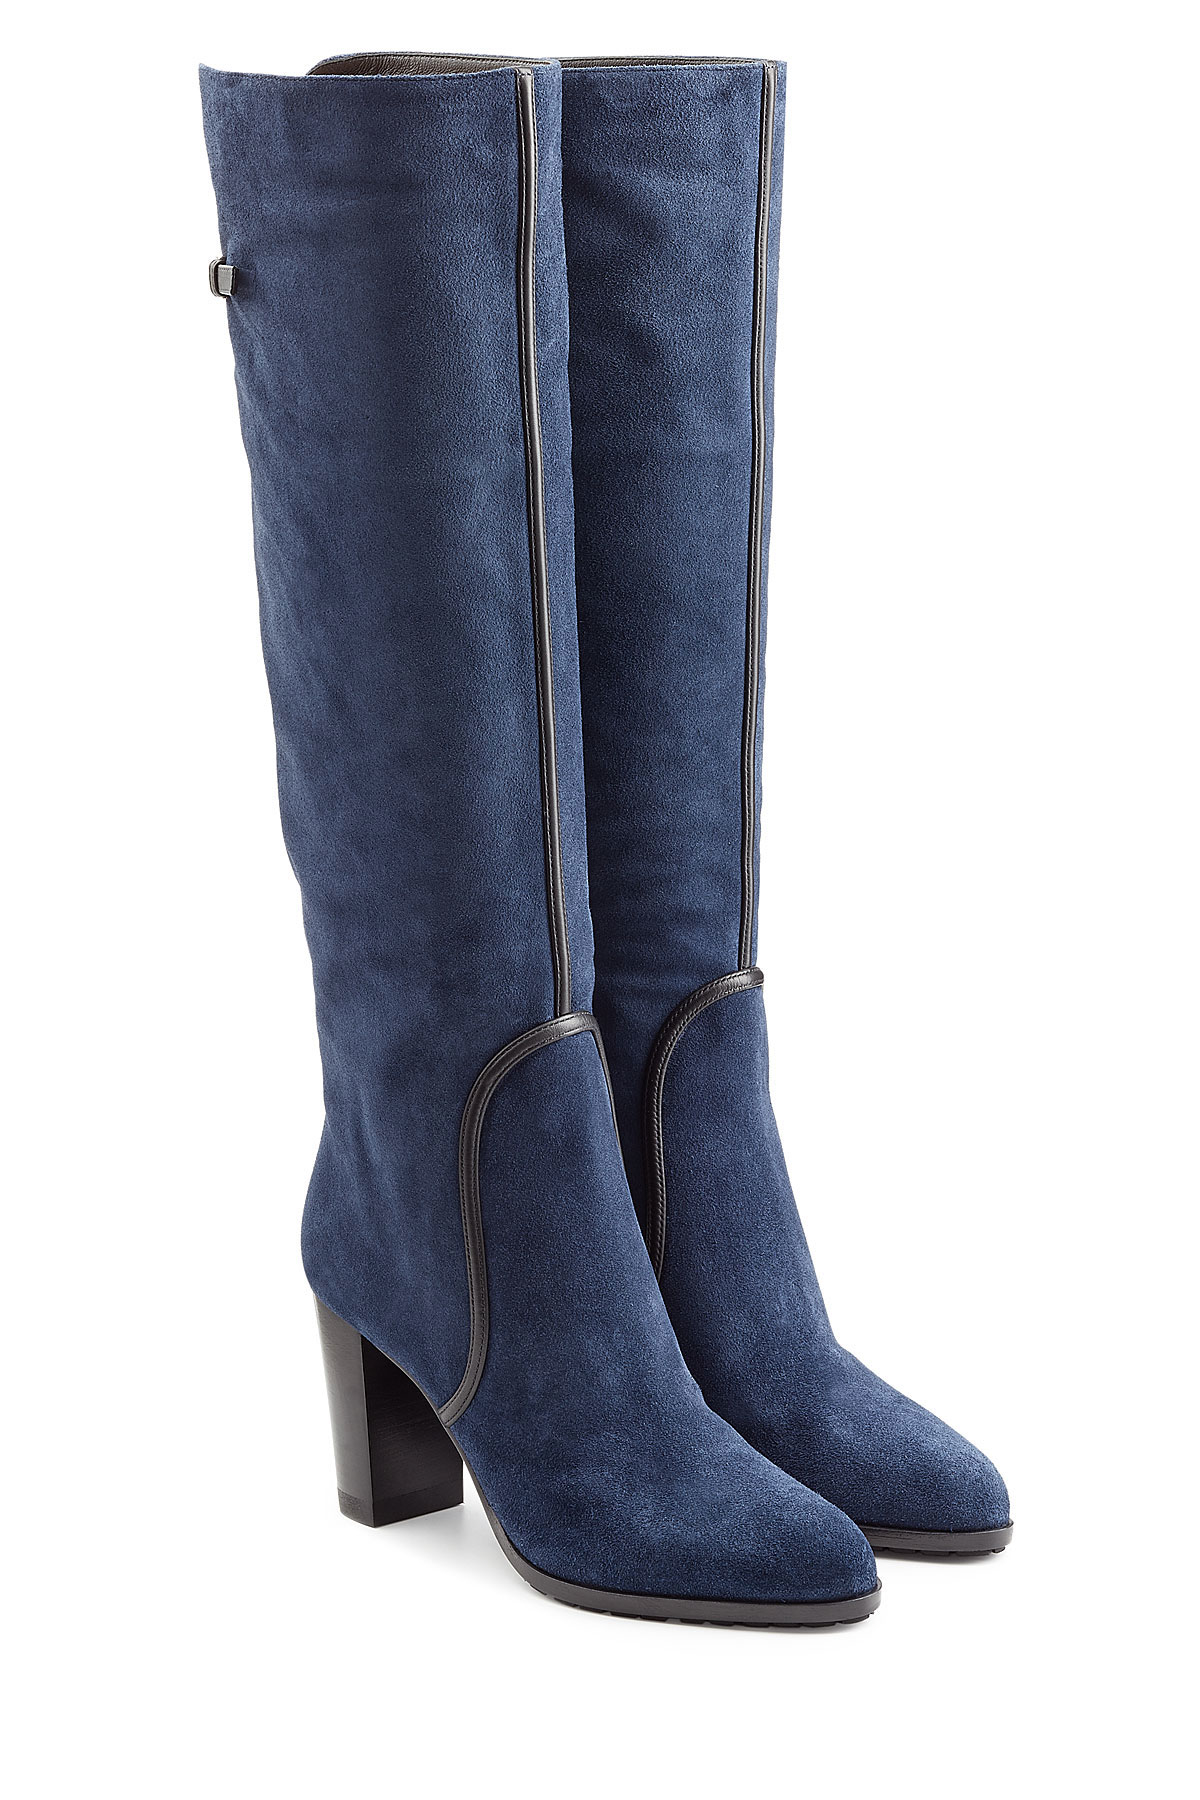 Sergio Rossi Suede Knee Boots Blue In Blue Lyst